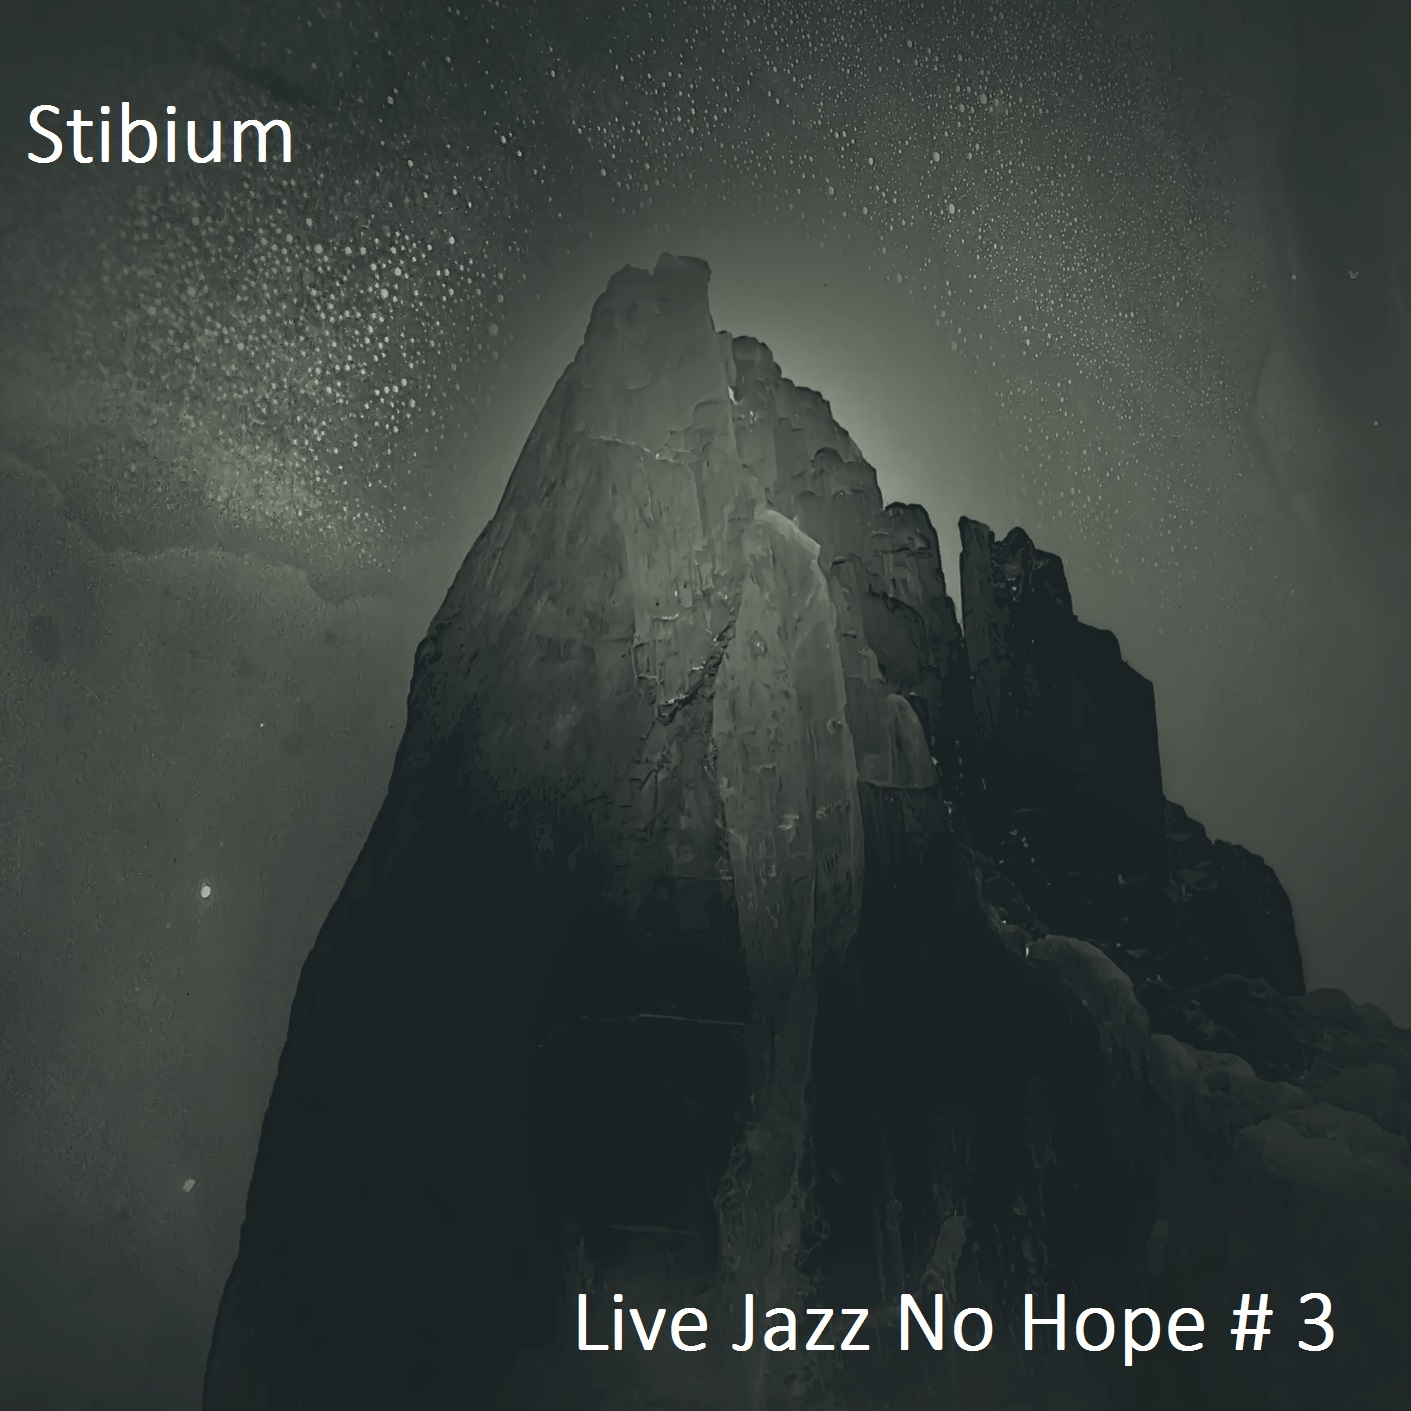 MSRCD070 - Stibium - Live Jazz No Hope # 3